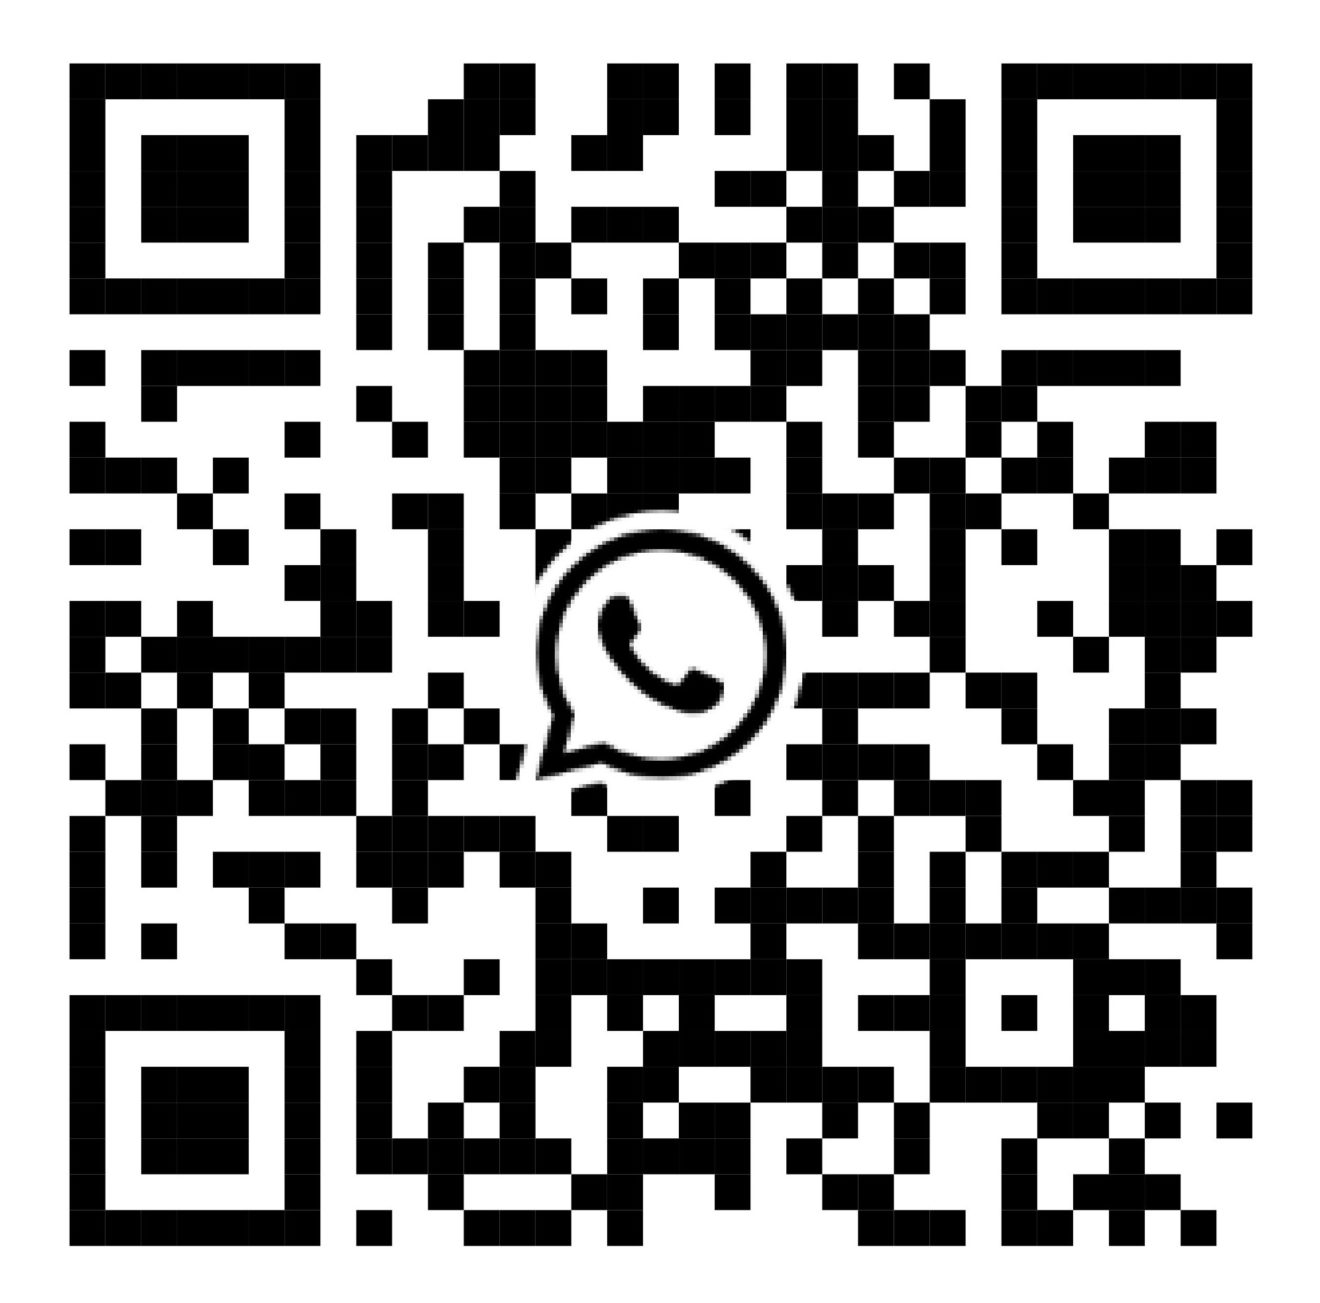 Join_Running_Team_Whatsapp_QR